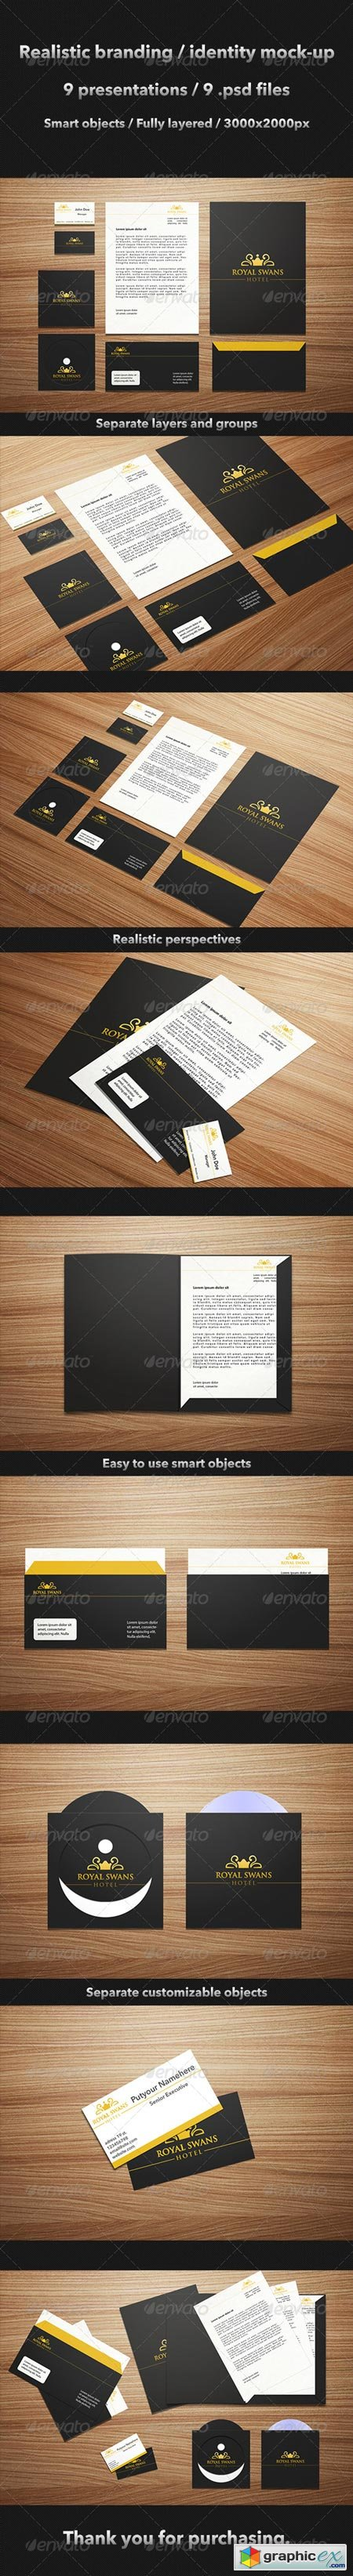 Realistic Brand Identity Mock-Up 4540150